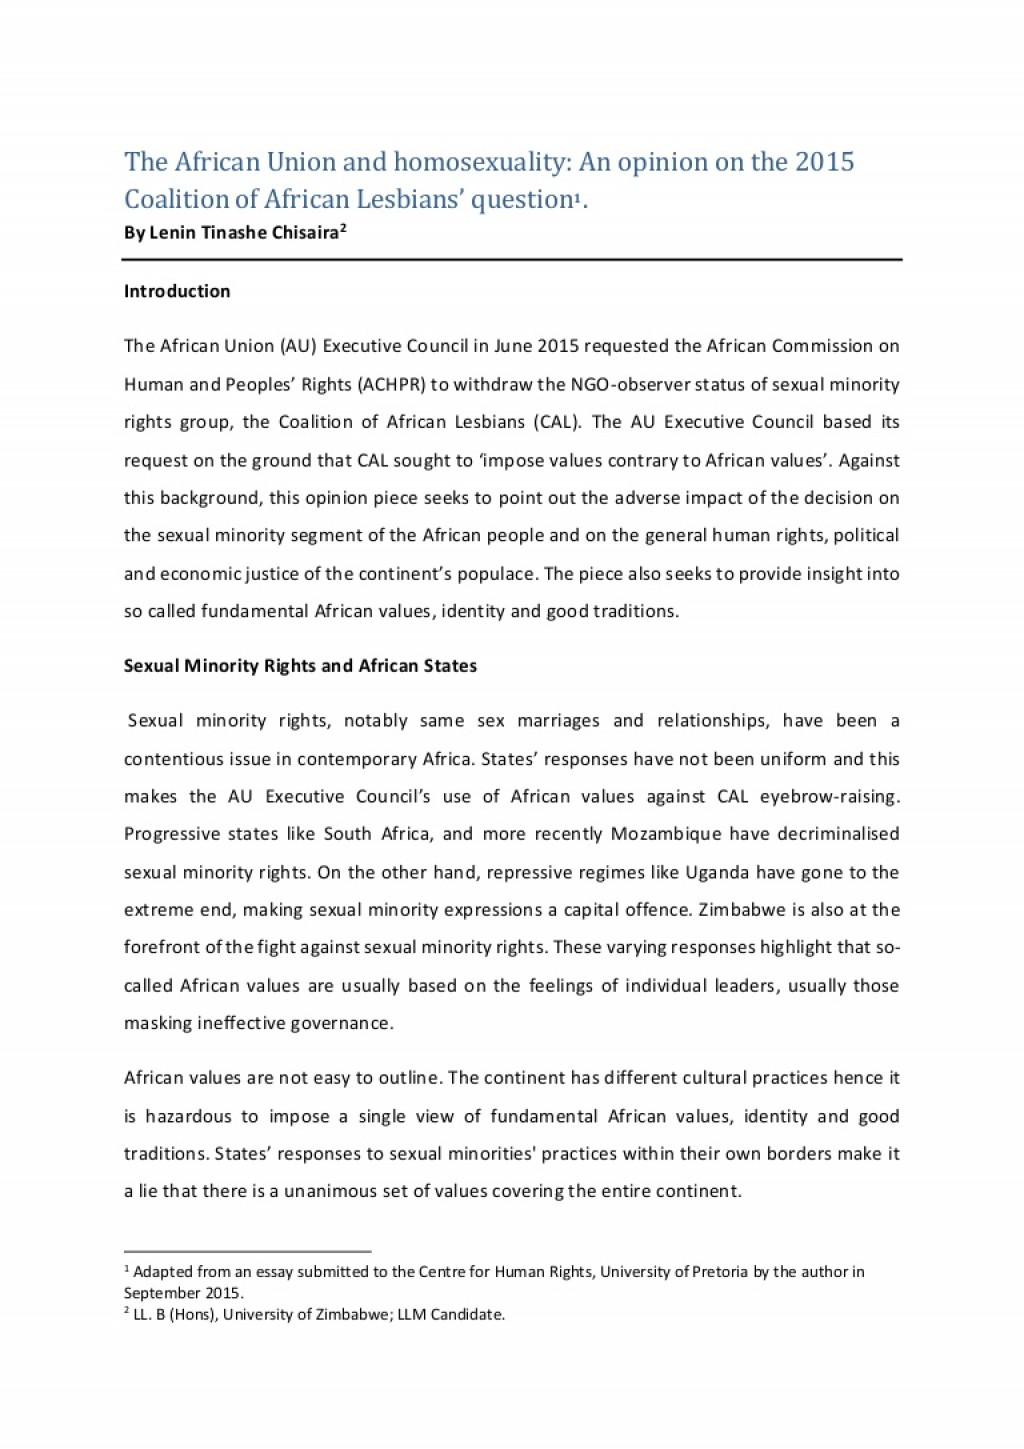 002 Theafricanunionandhomosexuality Anopiniononthecoalitionofafricanlesbiansquestion Thumbnail Essay Example Unbelievable Coalition Upload Help Prompt 1 Large